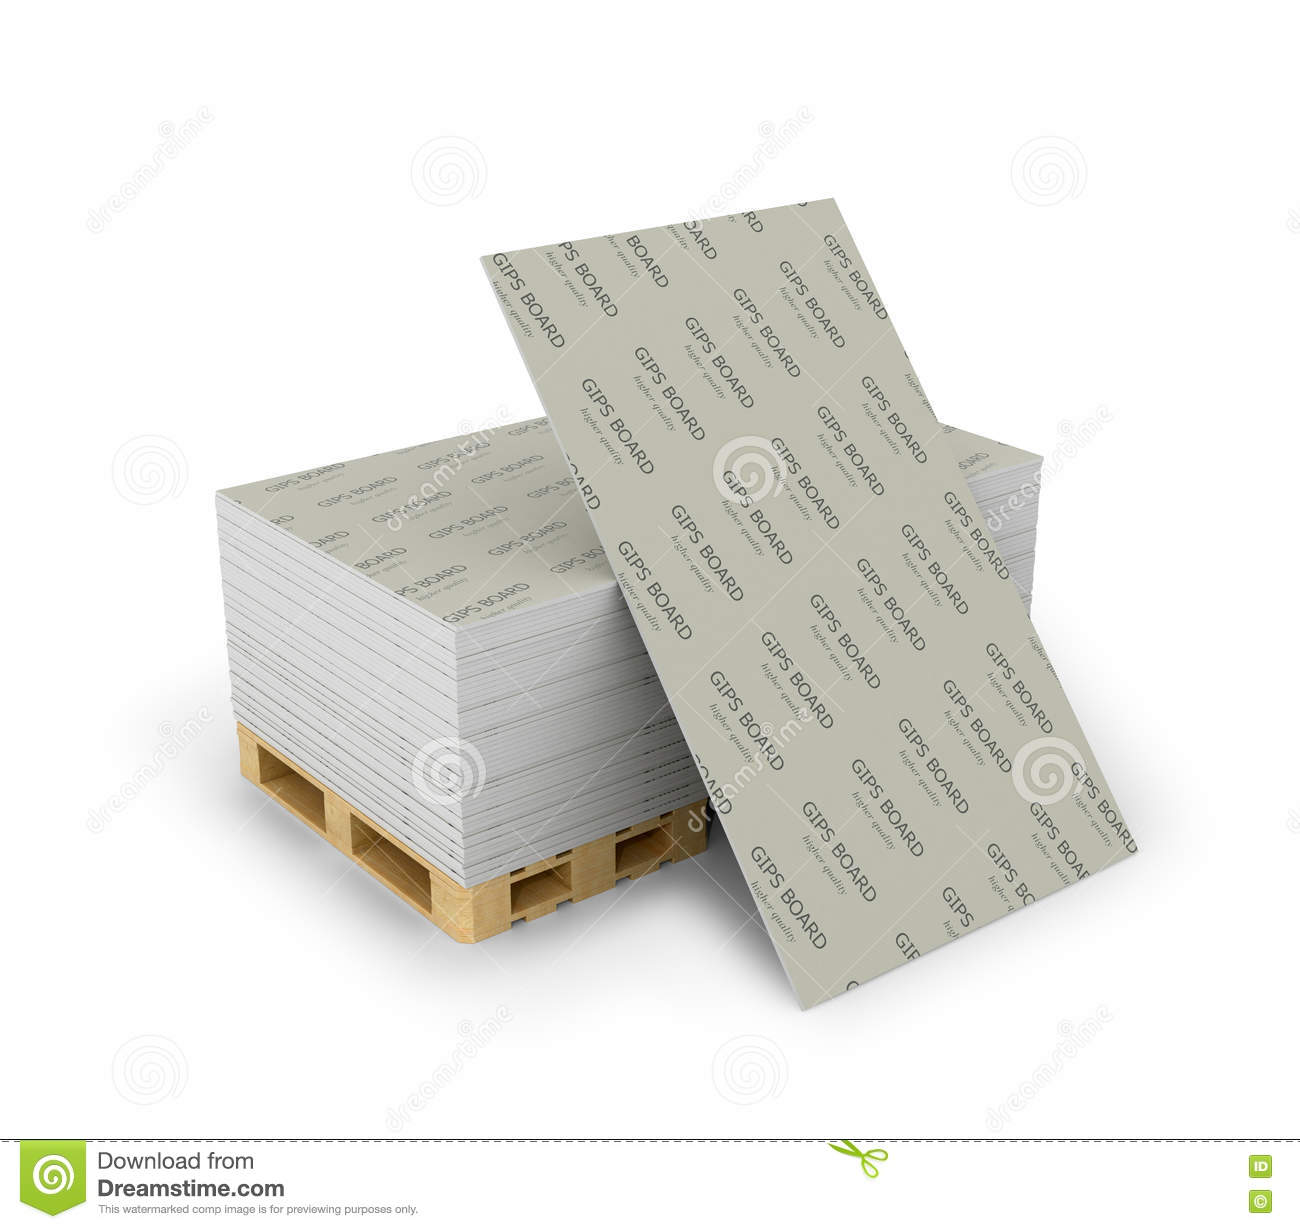 Drywall Time Cards : Stack drywall sheets stacked on wooden pallets stock